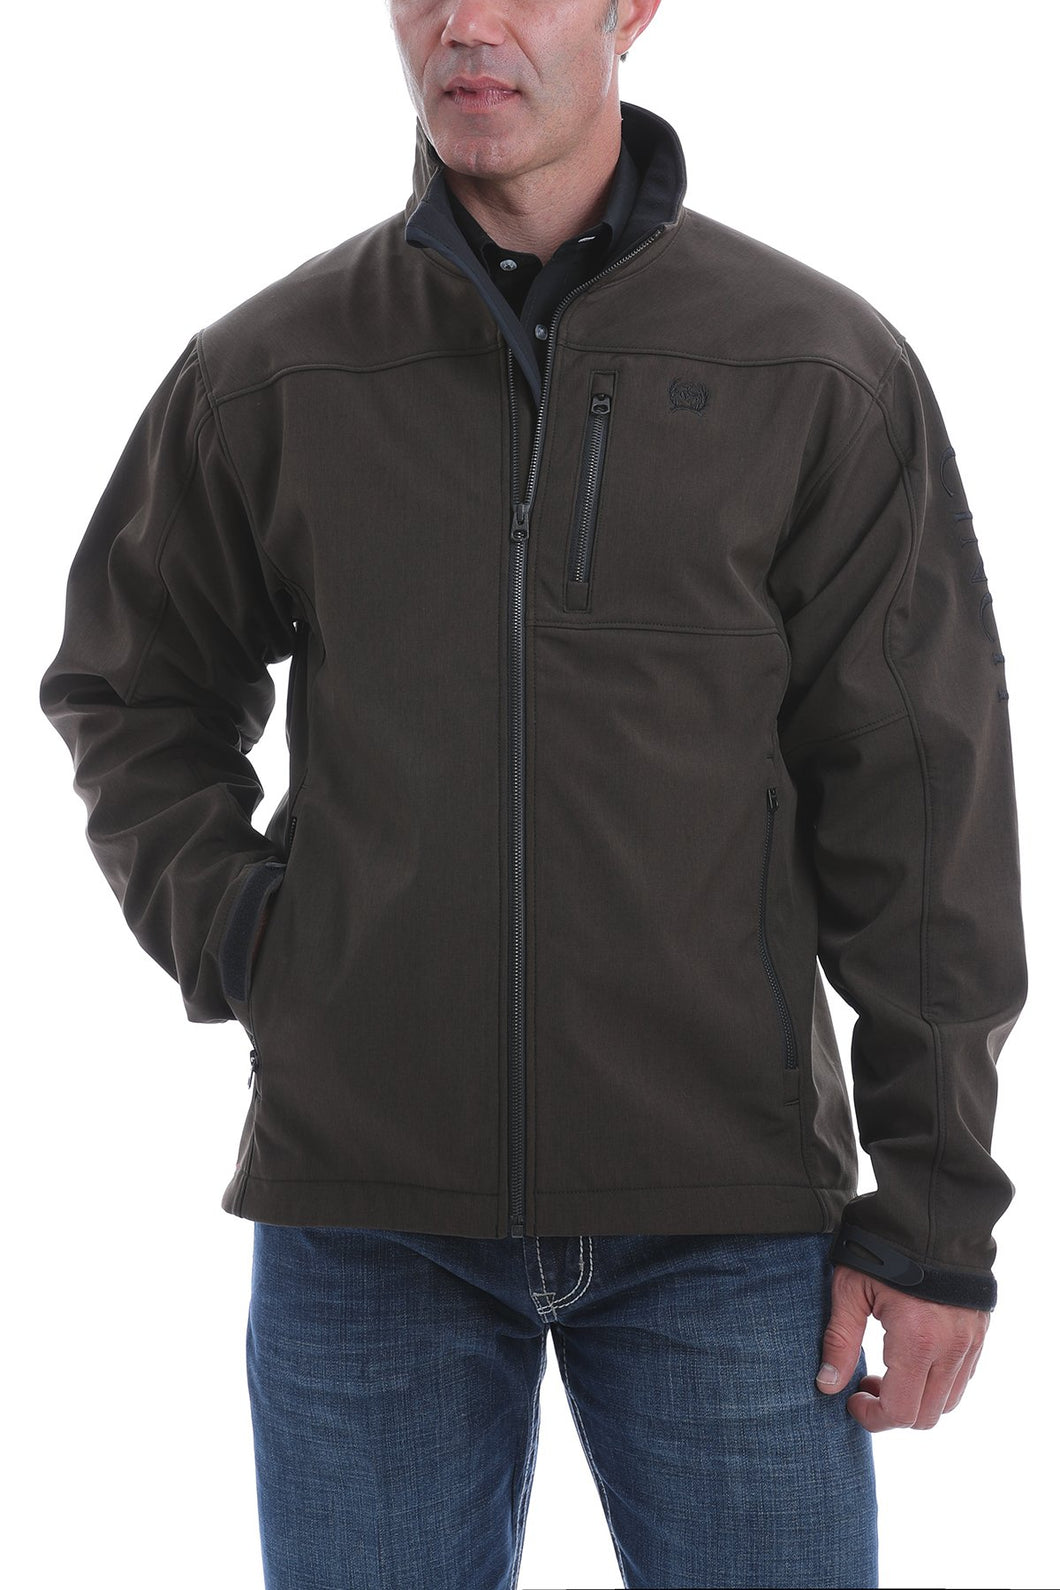 MENS CINCH TEXTURED BONDED JACKET - CHOCOLATE/BLACK